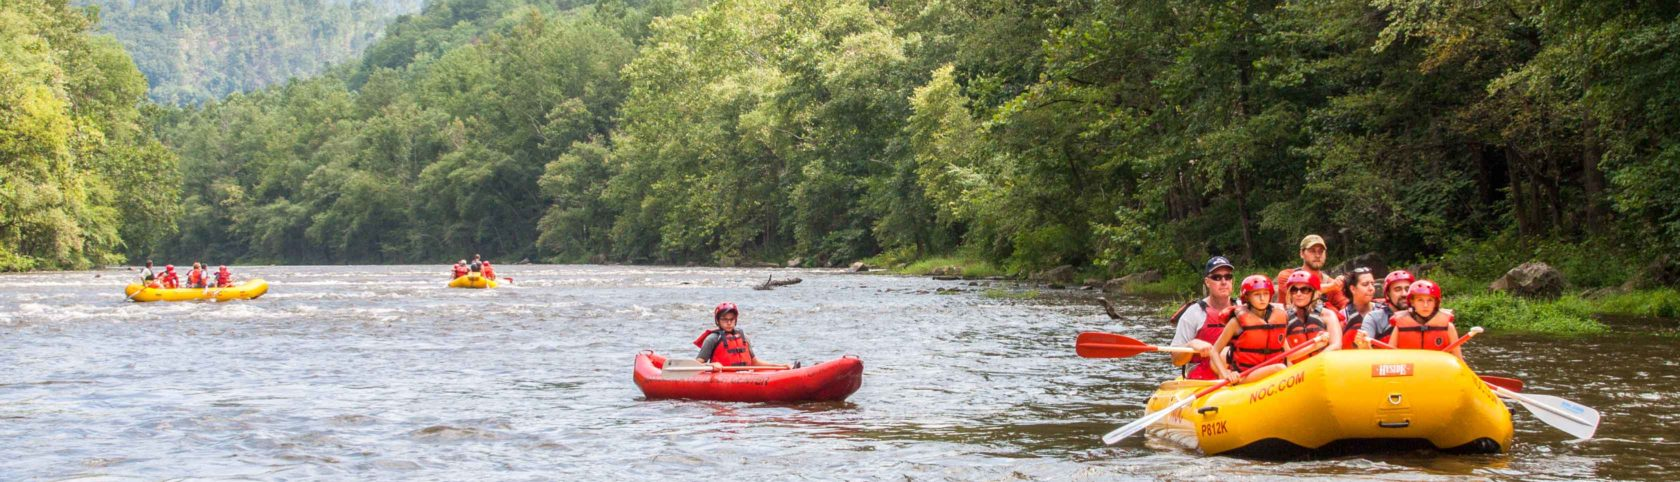 Guests rafting in Knoxville, TN